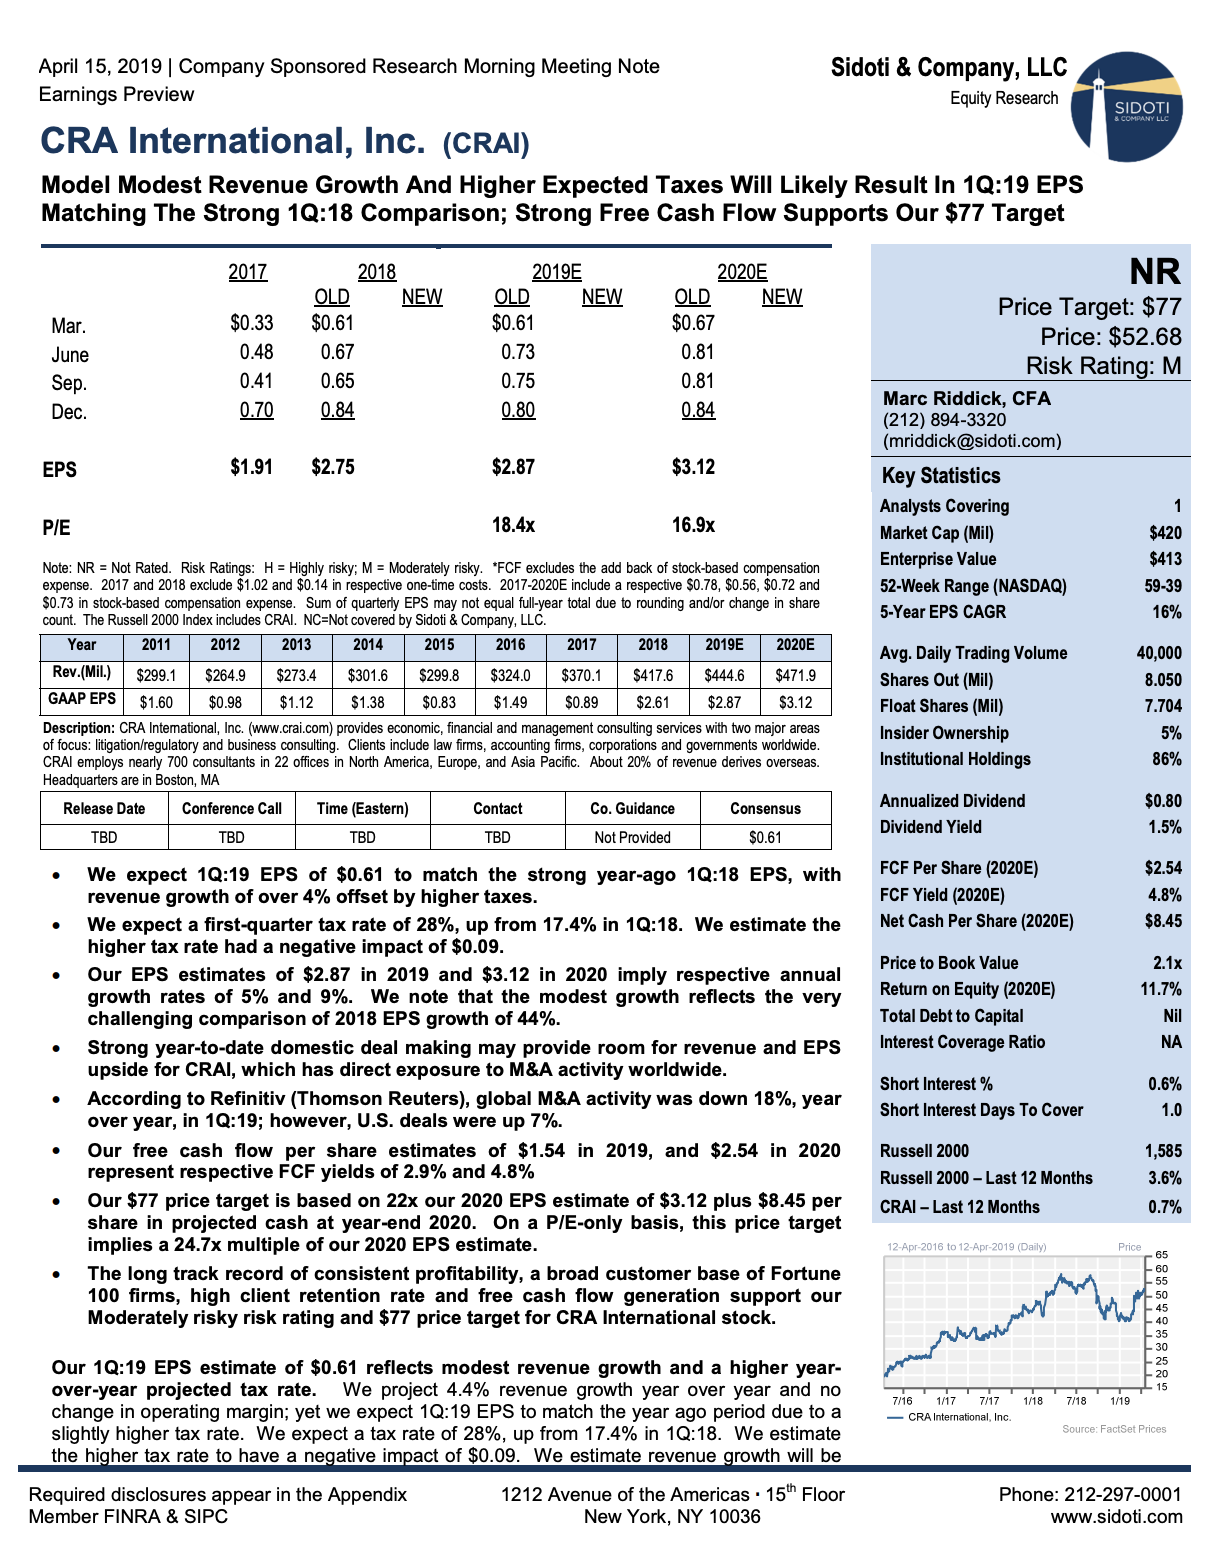 Earnings Preview: April 15, 2019